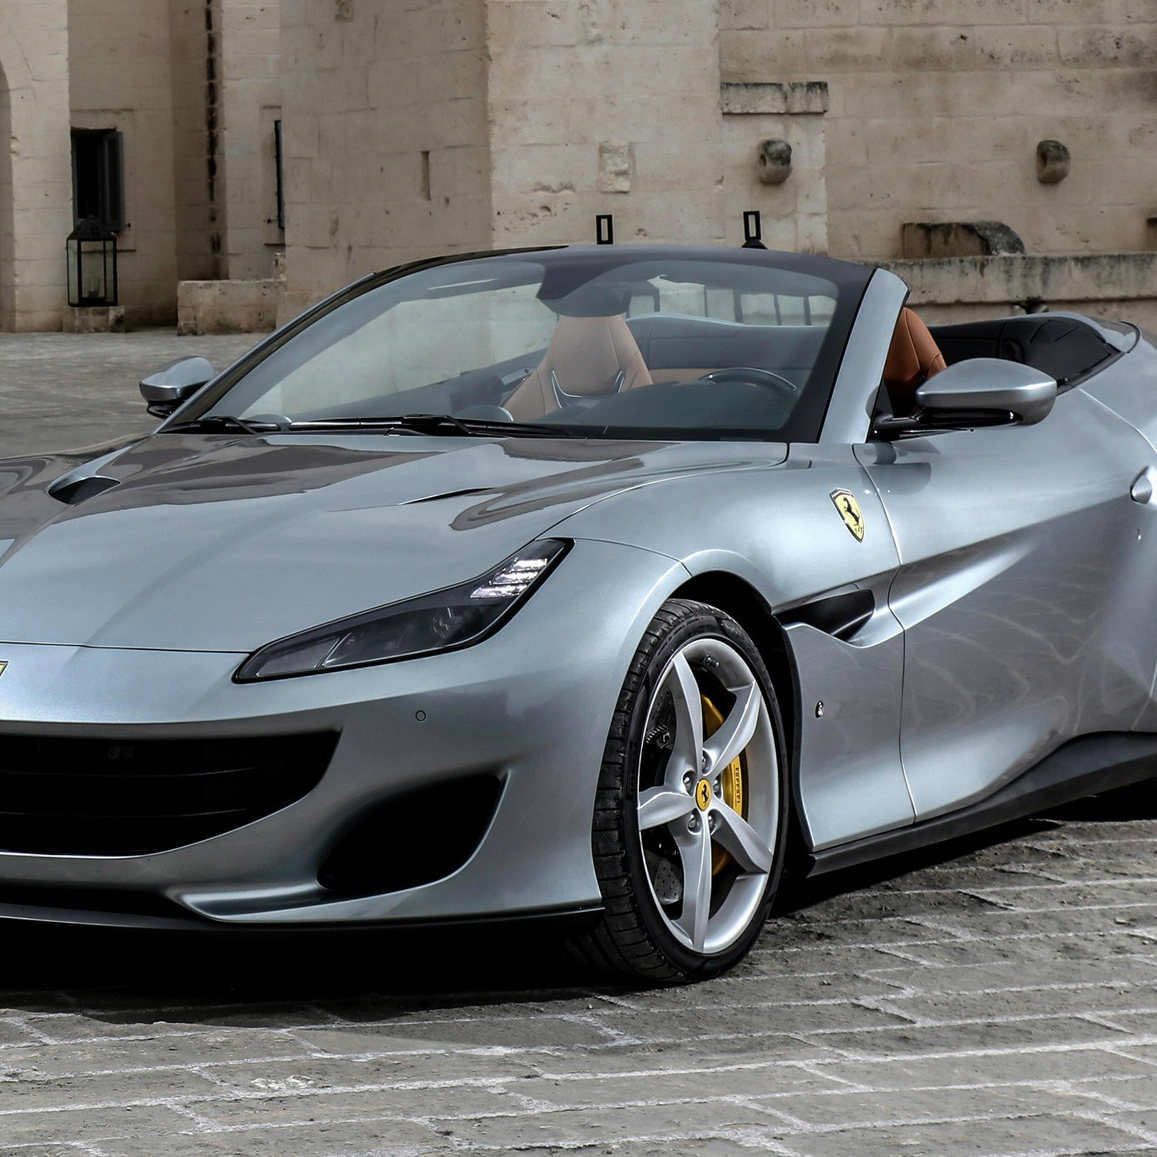 Ferrari Portofino: Ferrari 2019 Models: Complete Lineup, Prices, Specs & Reviews